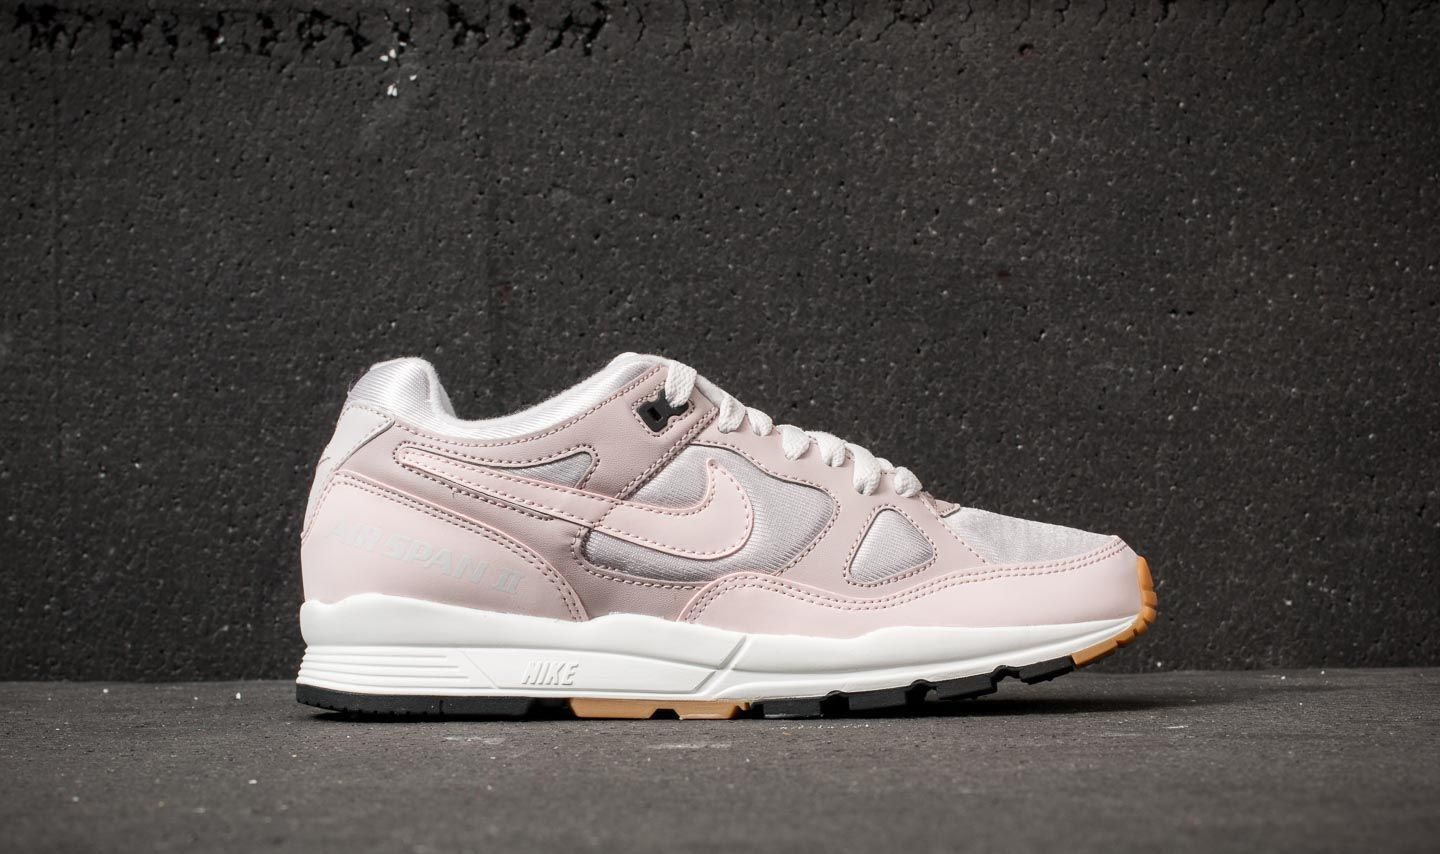 separation shoes 03a6f ade9e Nike W Air Span II Vast Grey Barely Rose at a great price 55 €